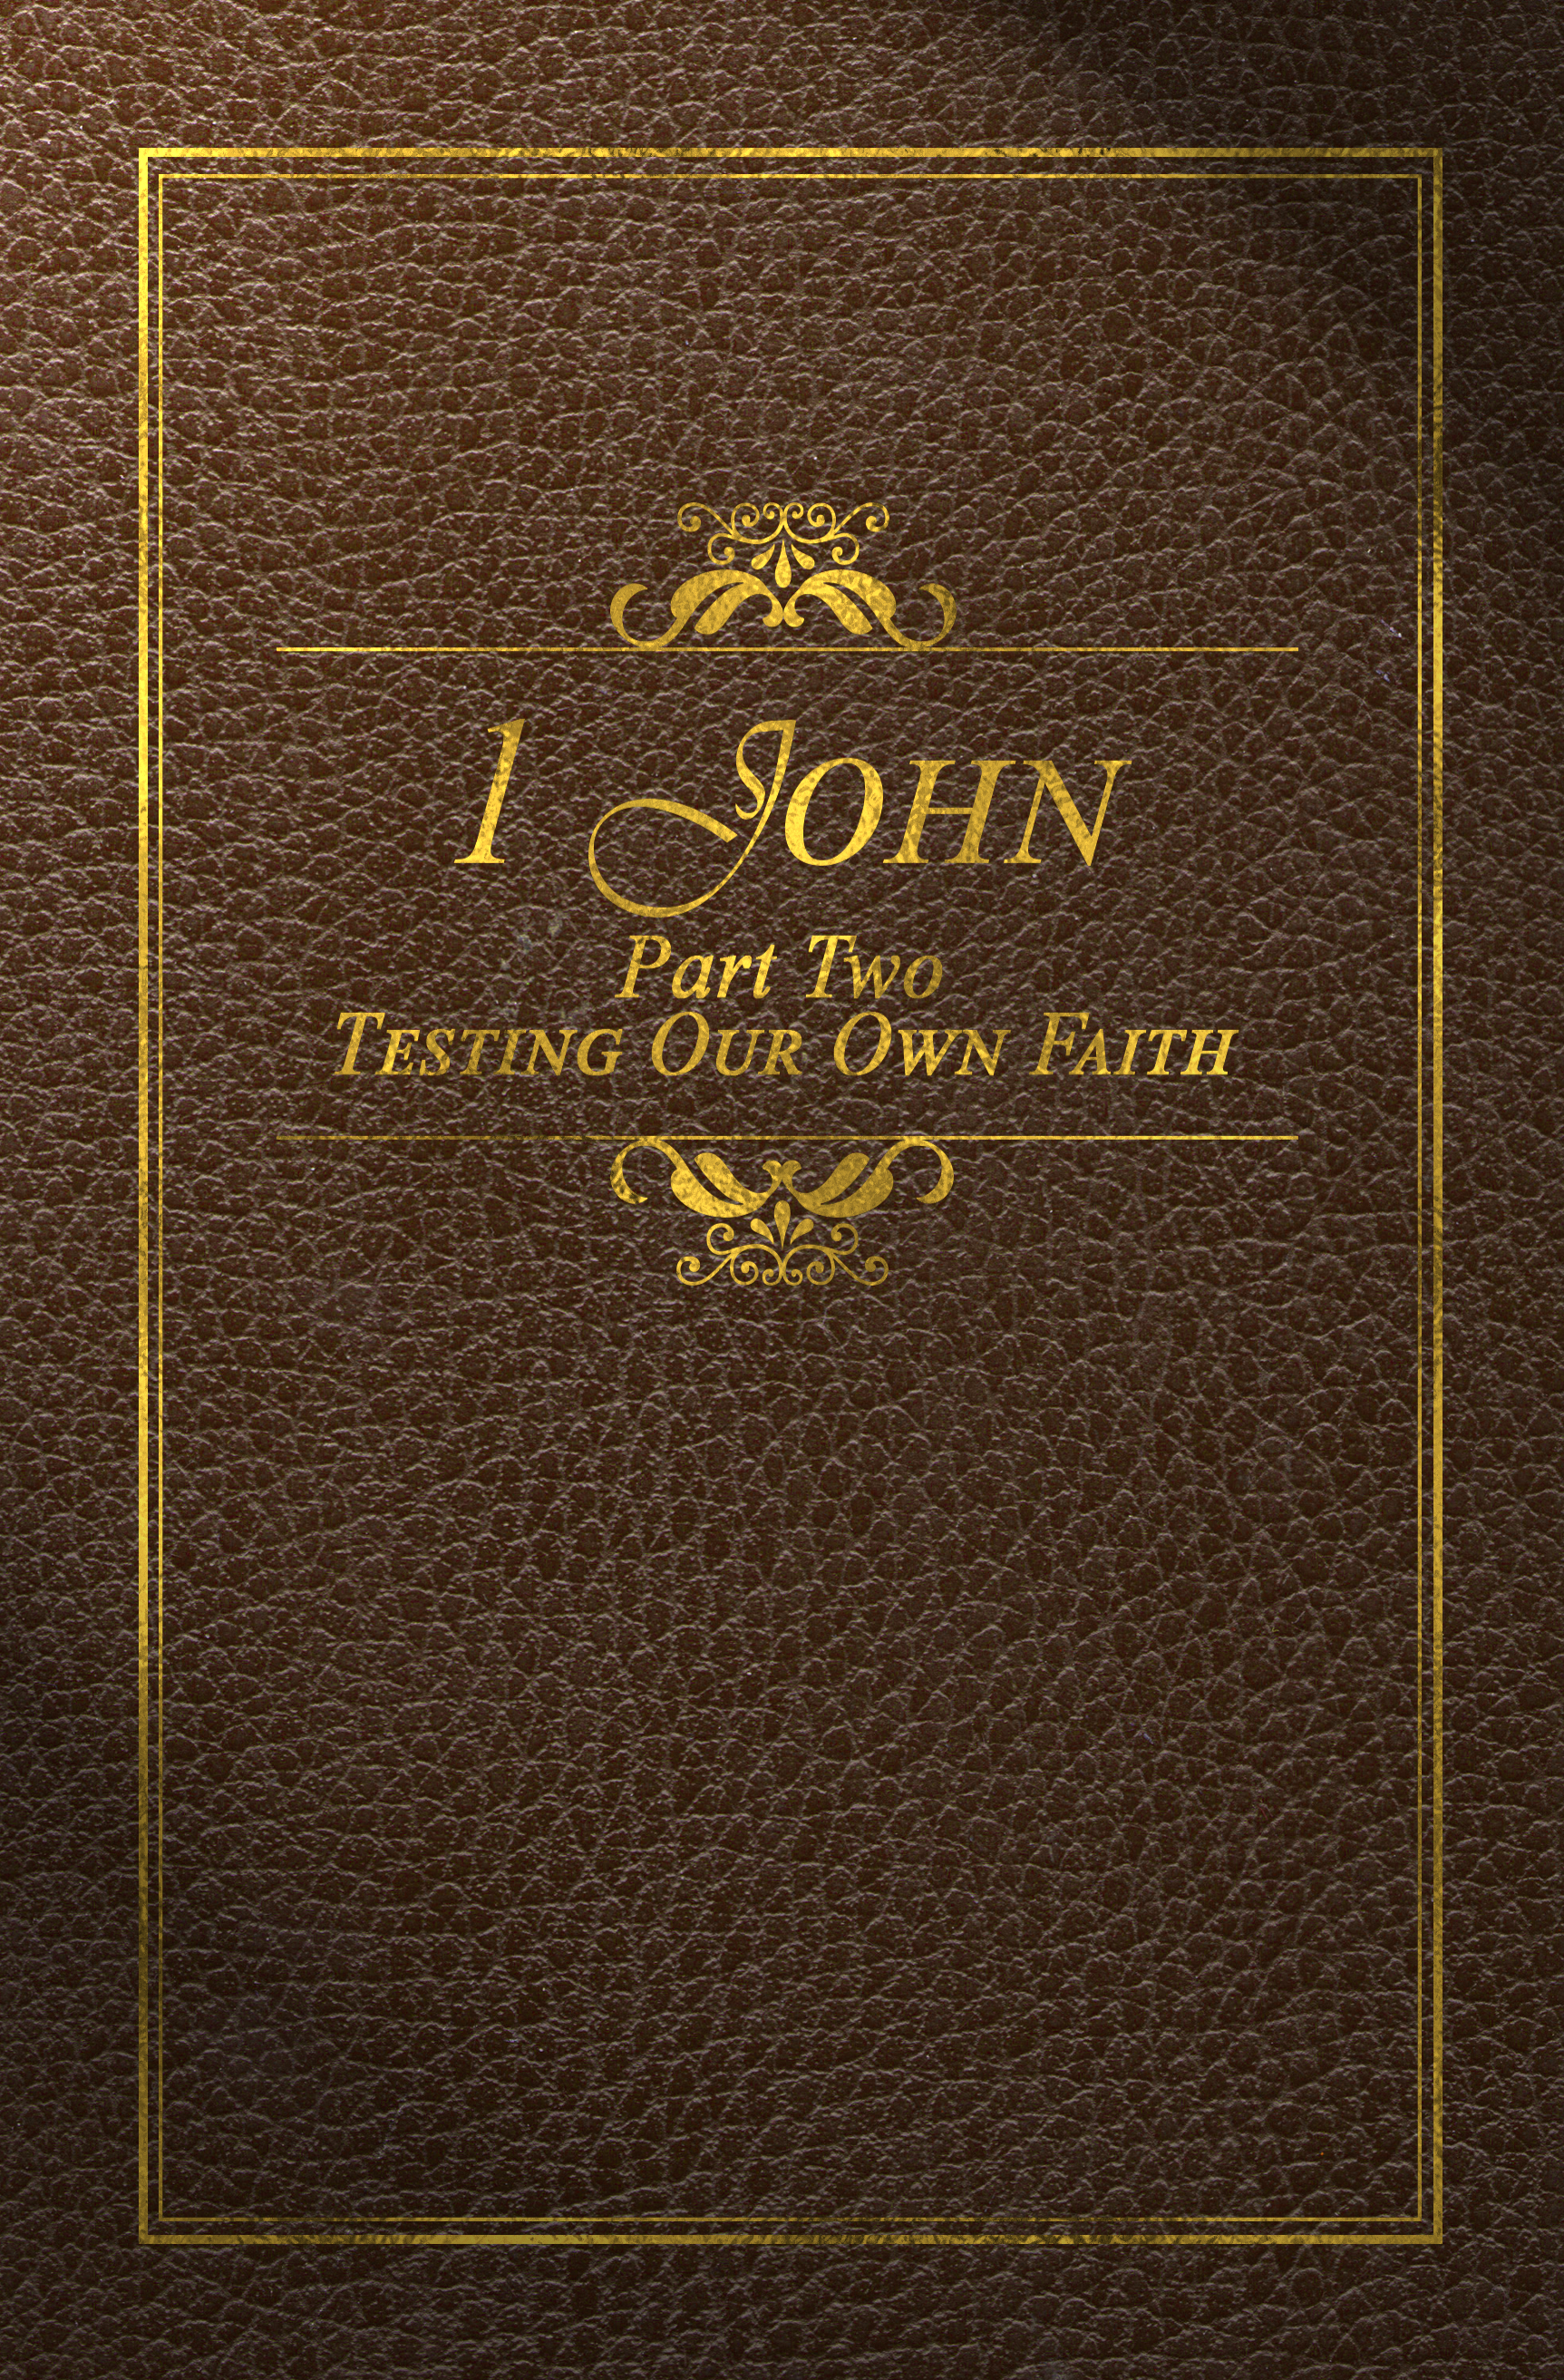 1 John part two cover web.png